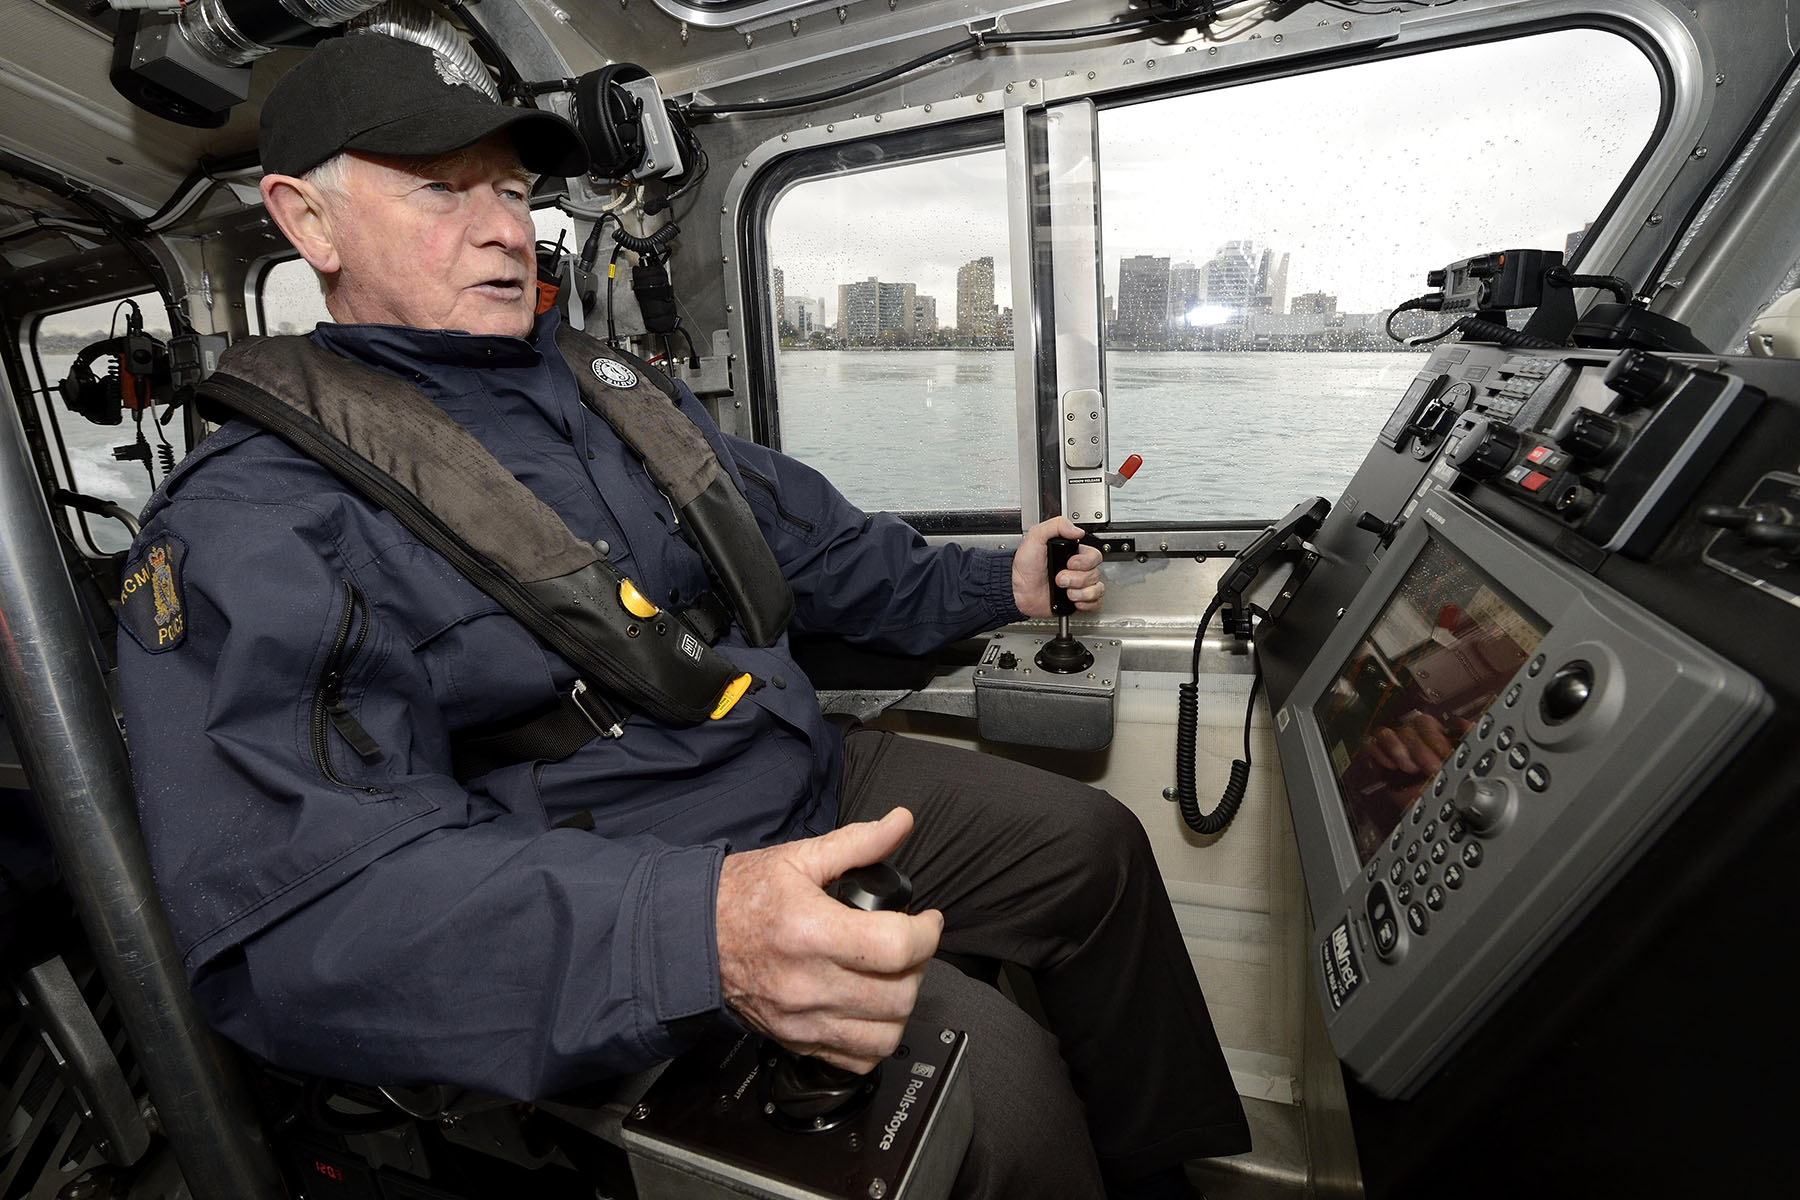 The Governor General embarked on a patrol of the Detroit River, during which he received further details about the program and... took control of the vessel!